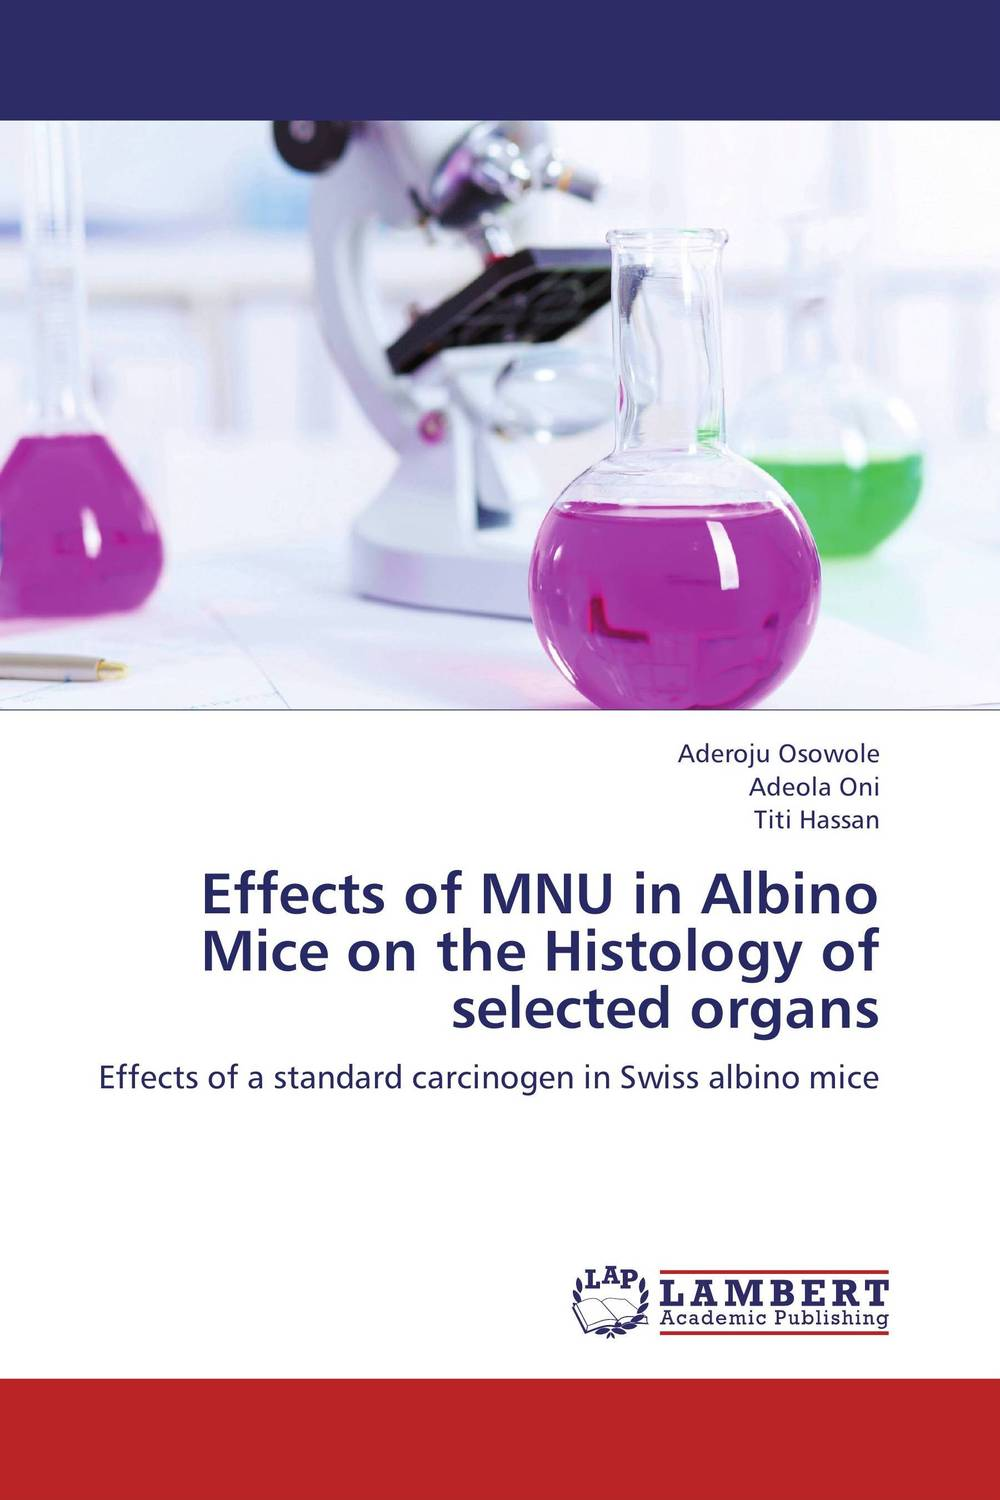 купить Effects of MNU in Albino Mice on the Histology of selected organs недорого